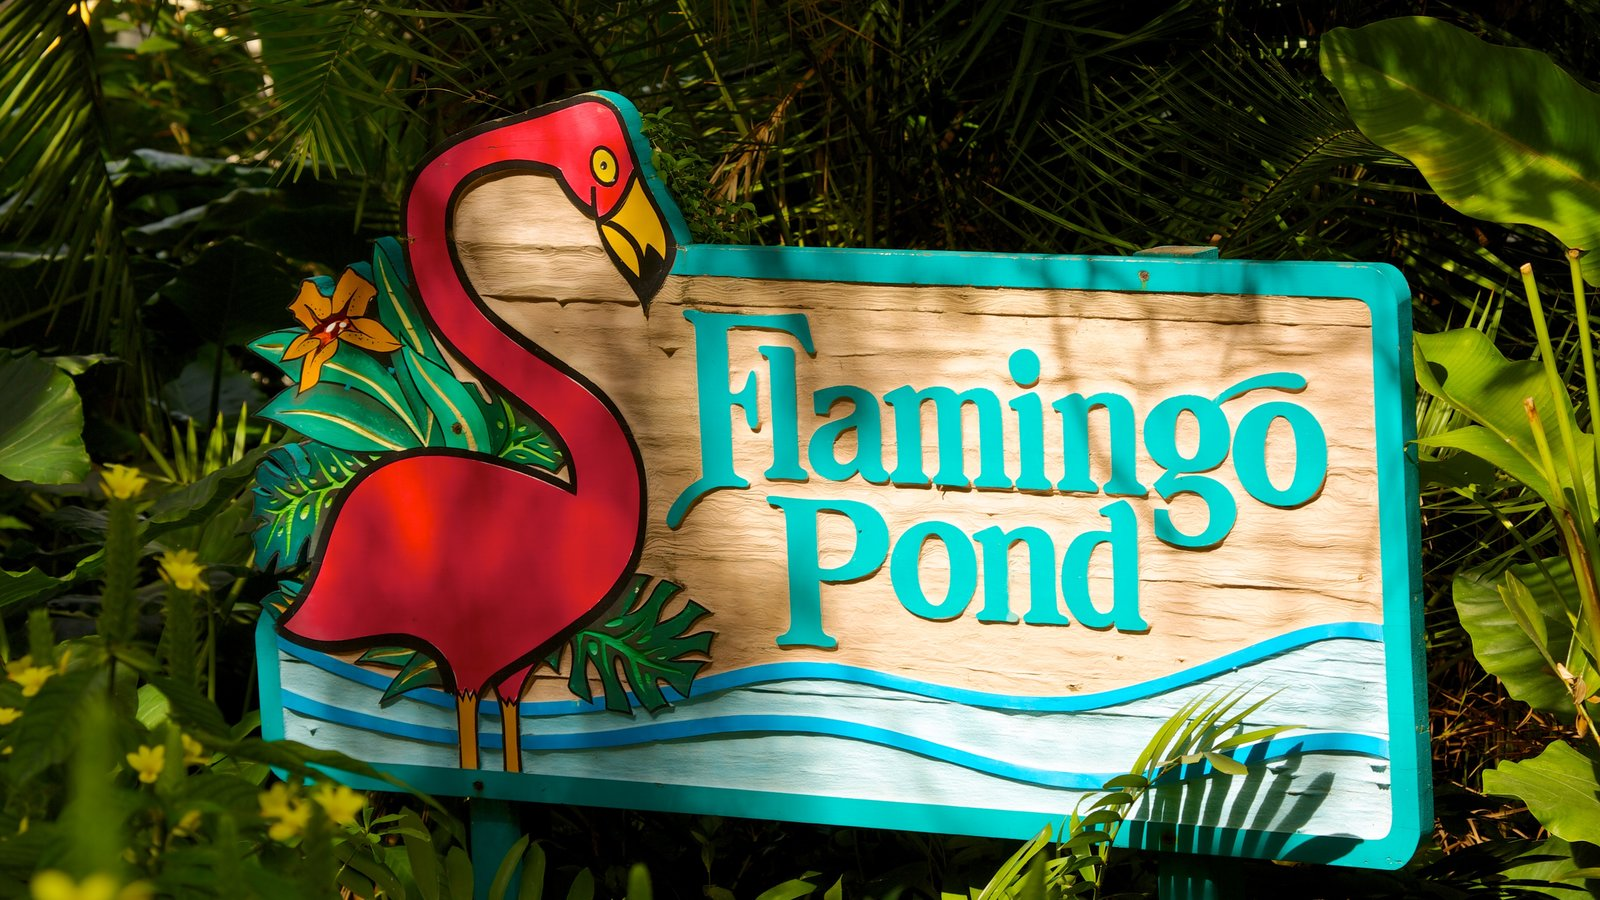 Flamingo Gardens showing flowers, zoo animals and signage